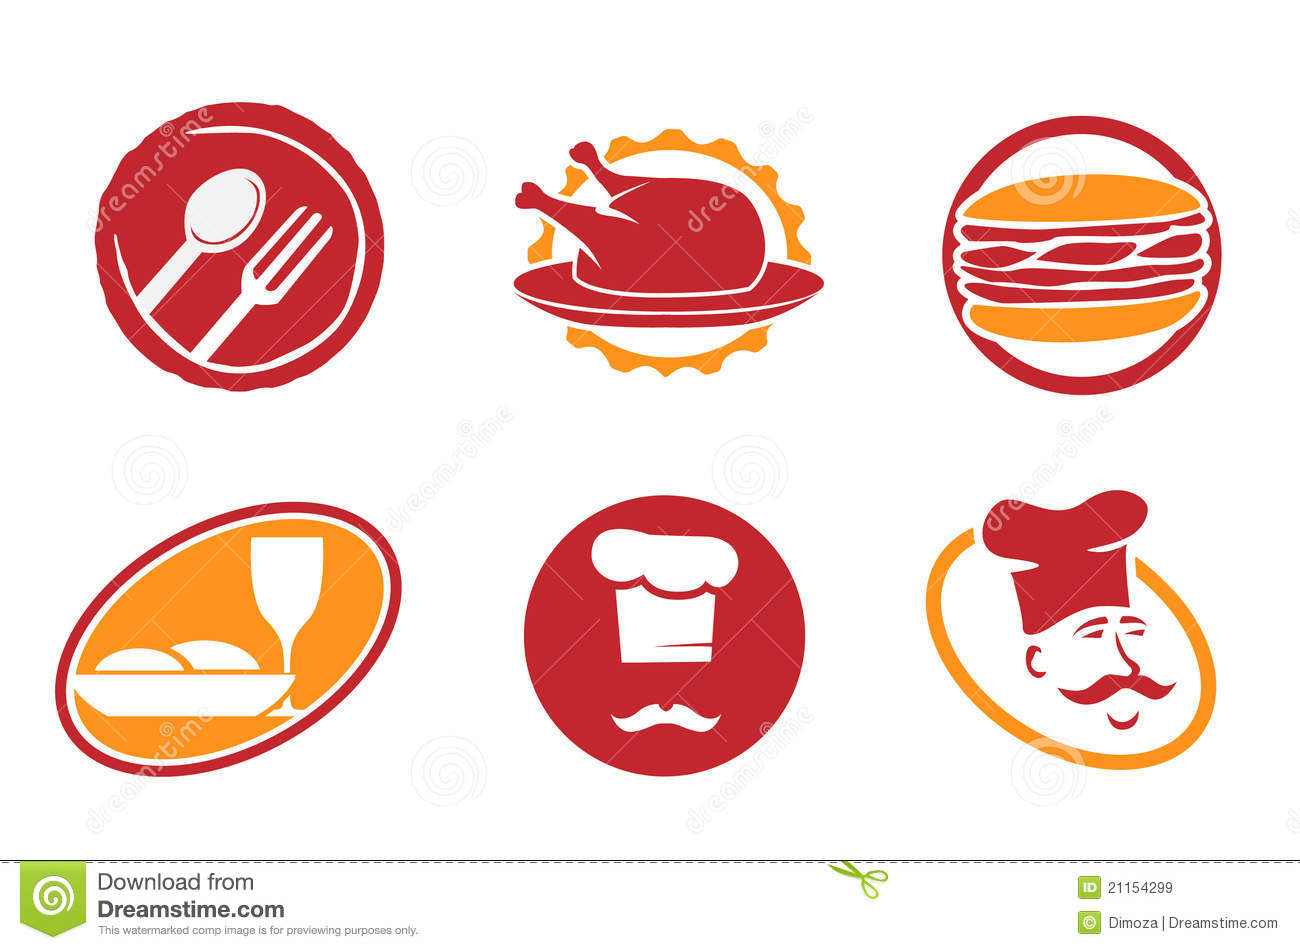 restaurant symbols clip art - photo #37